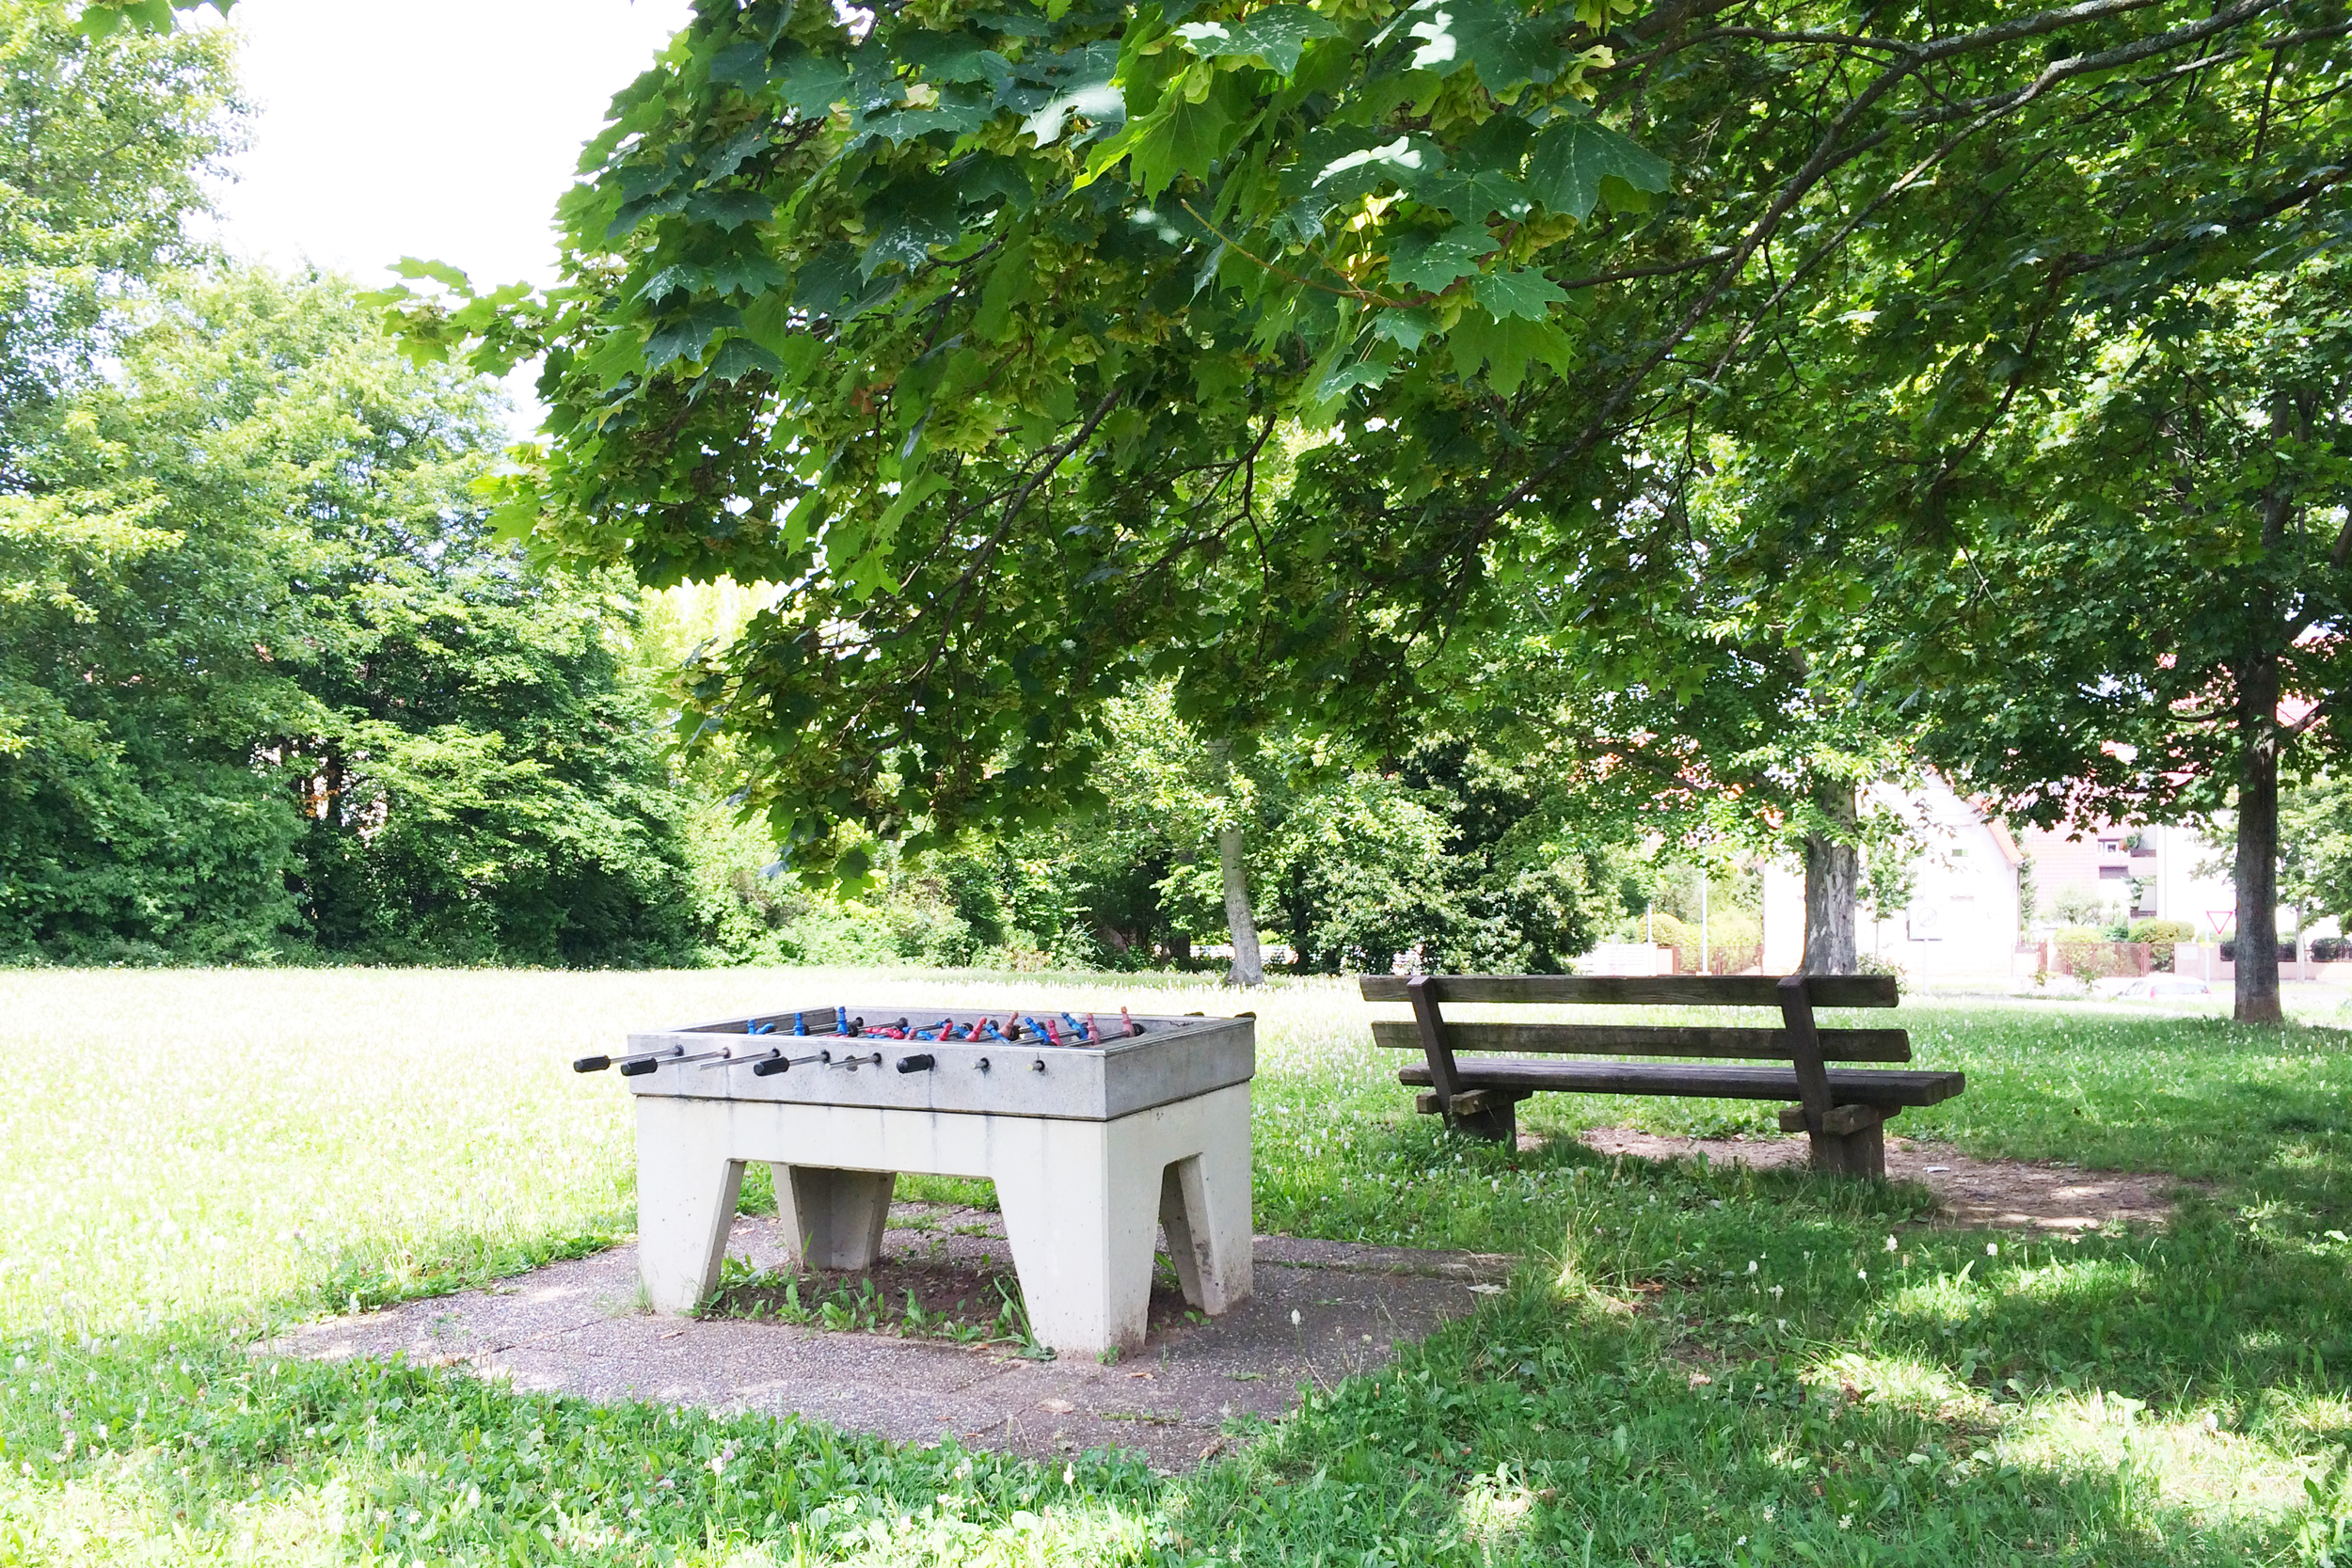 Just when I thought Germany couldn't get any cooler—outdoor foosball table.